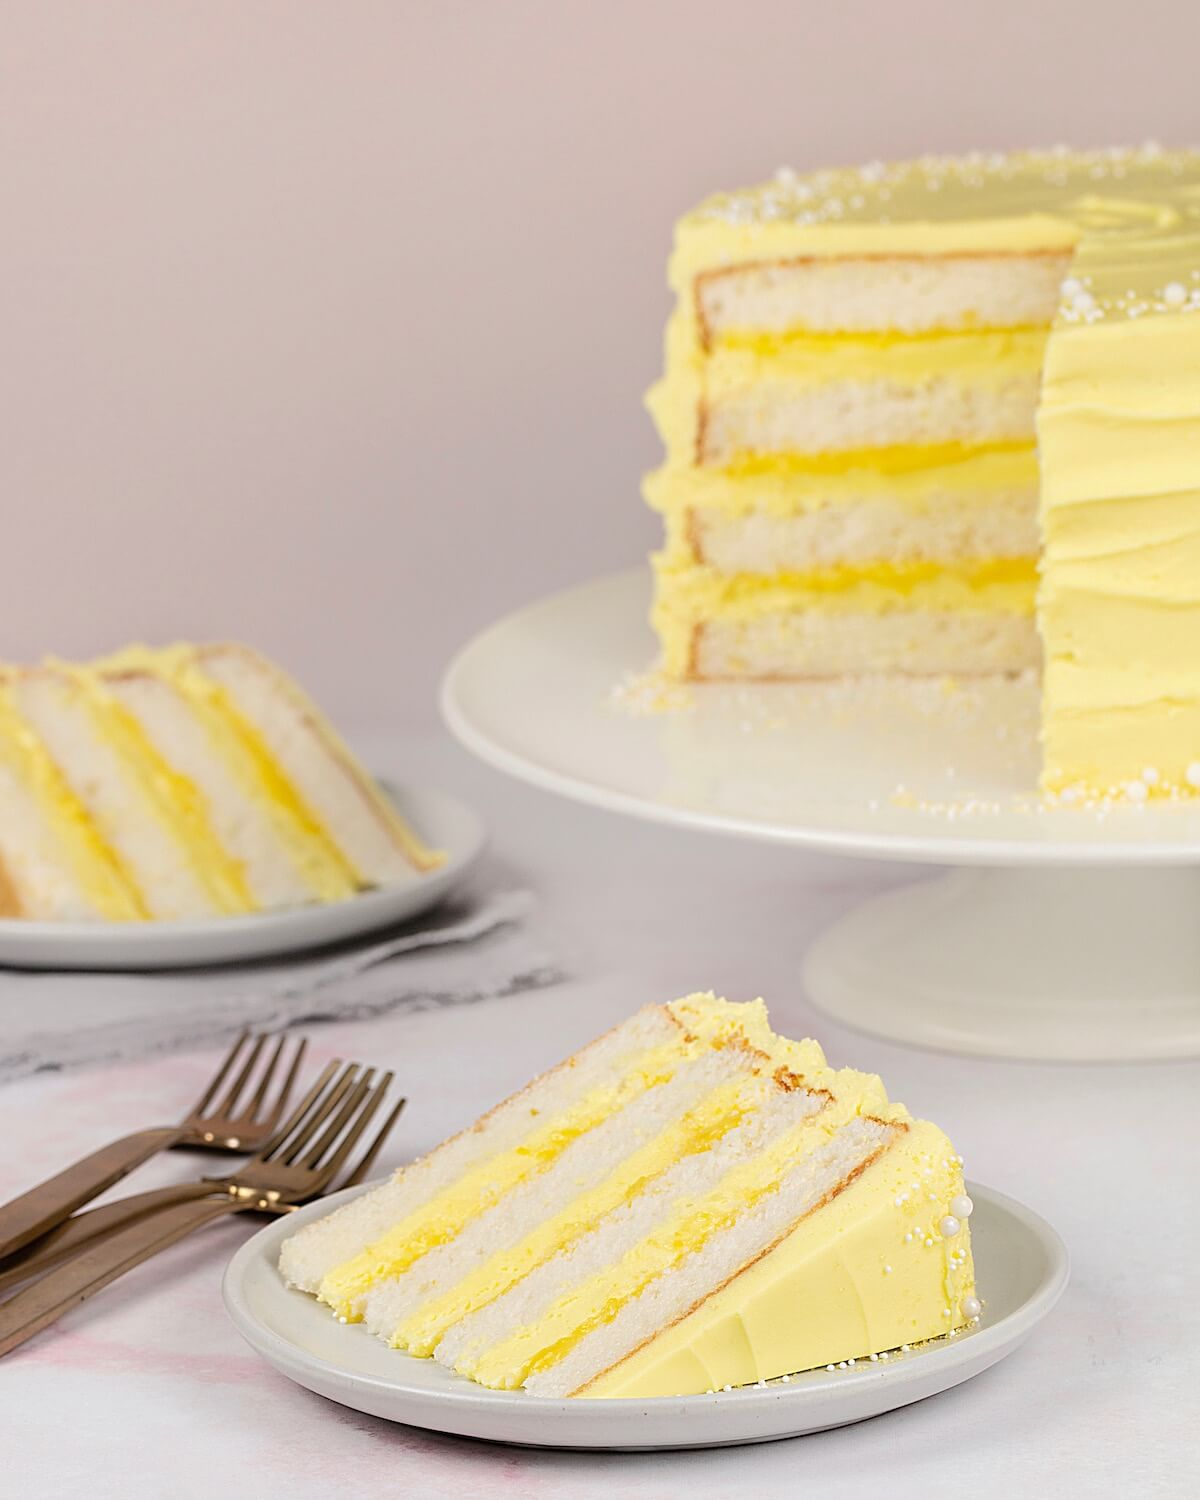 Lemon Cake on cake stand with two slices on plates